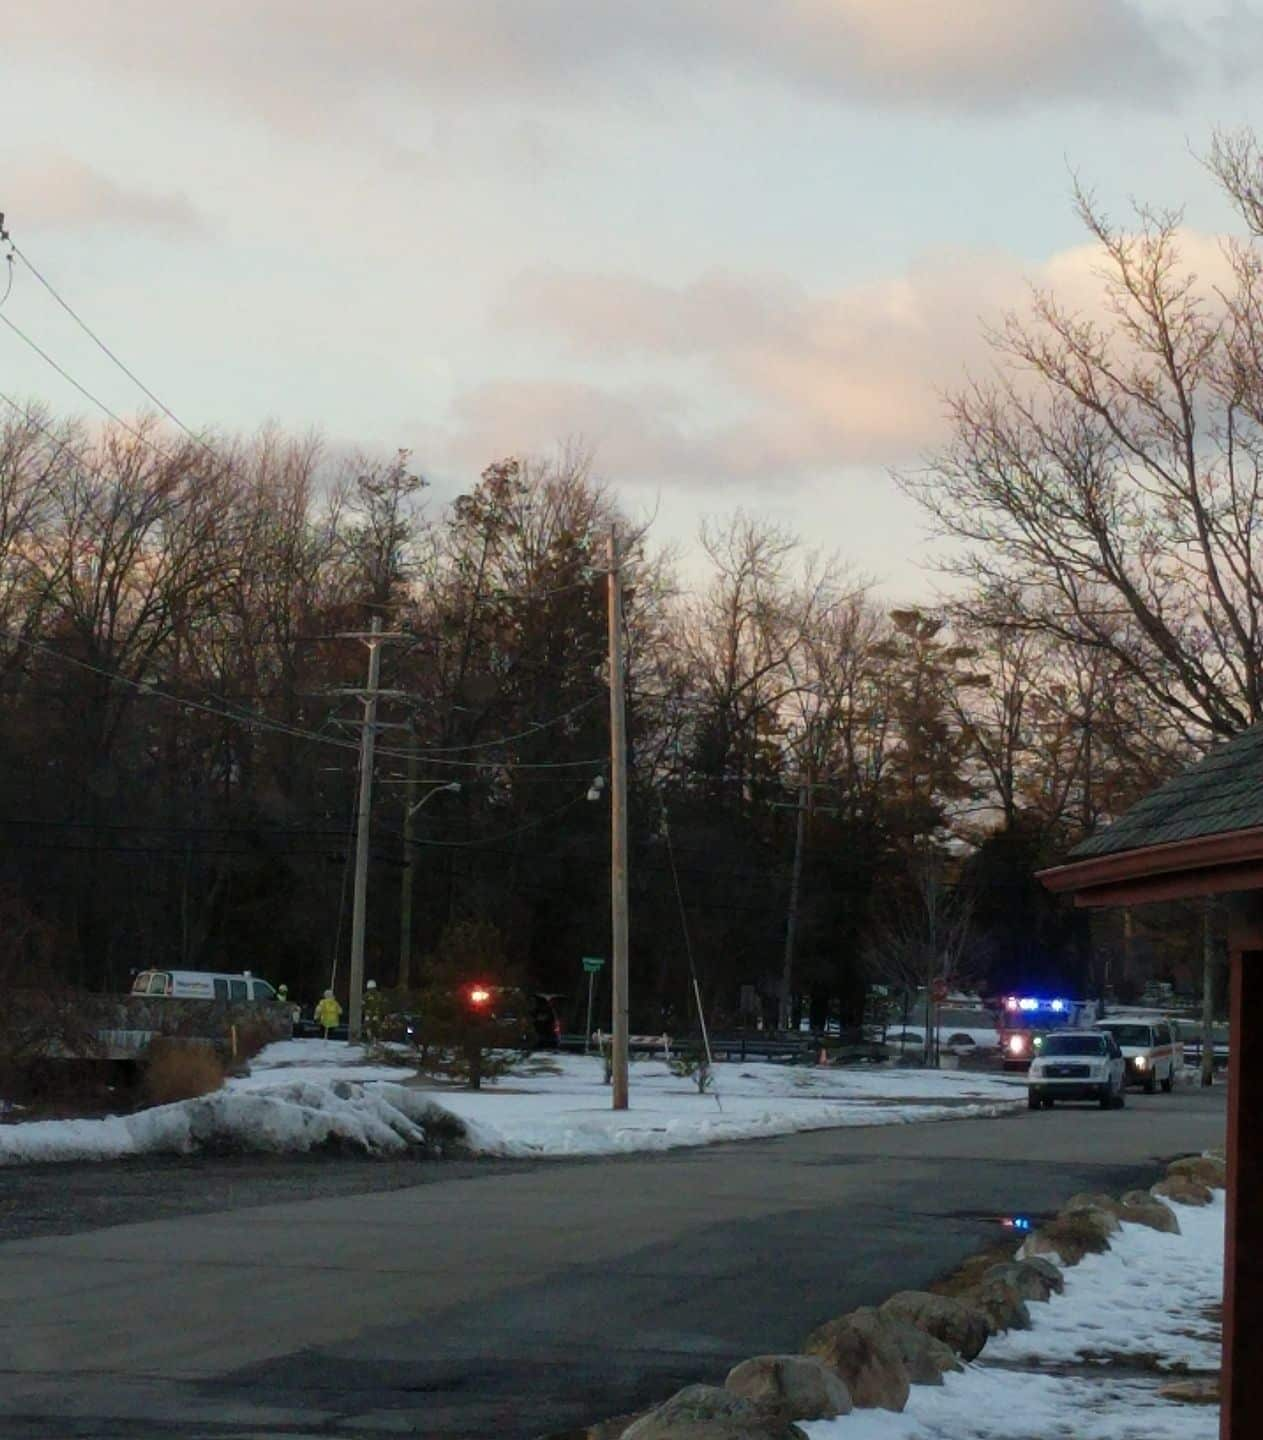 Major Gas Leak in Allendale